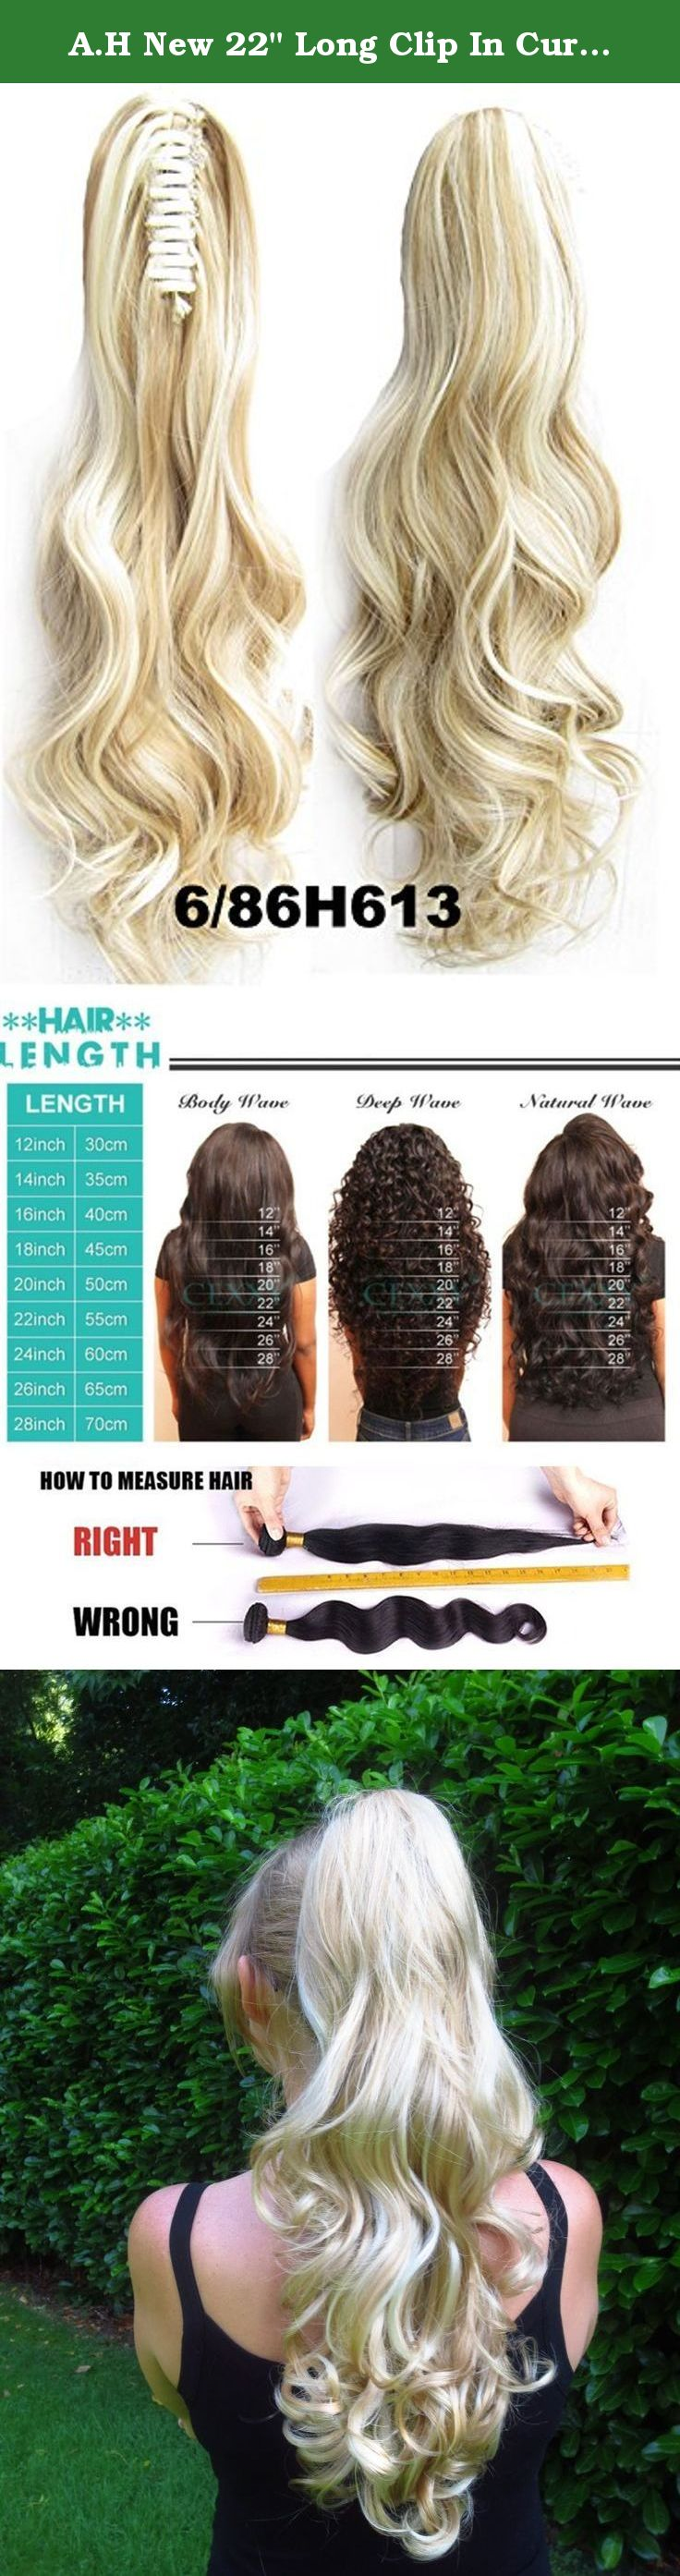 Ah new 22 long clip in curly pony tail synthetic human